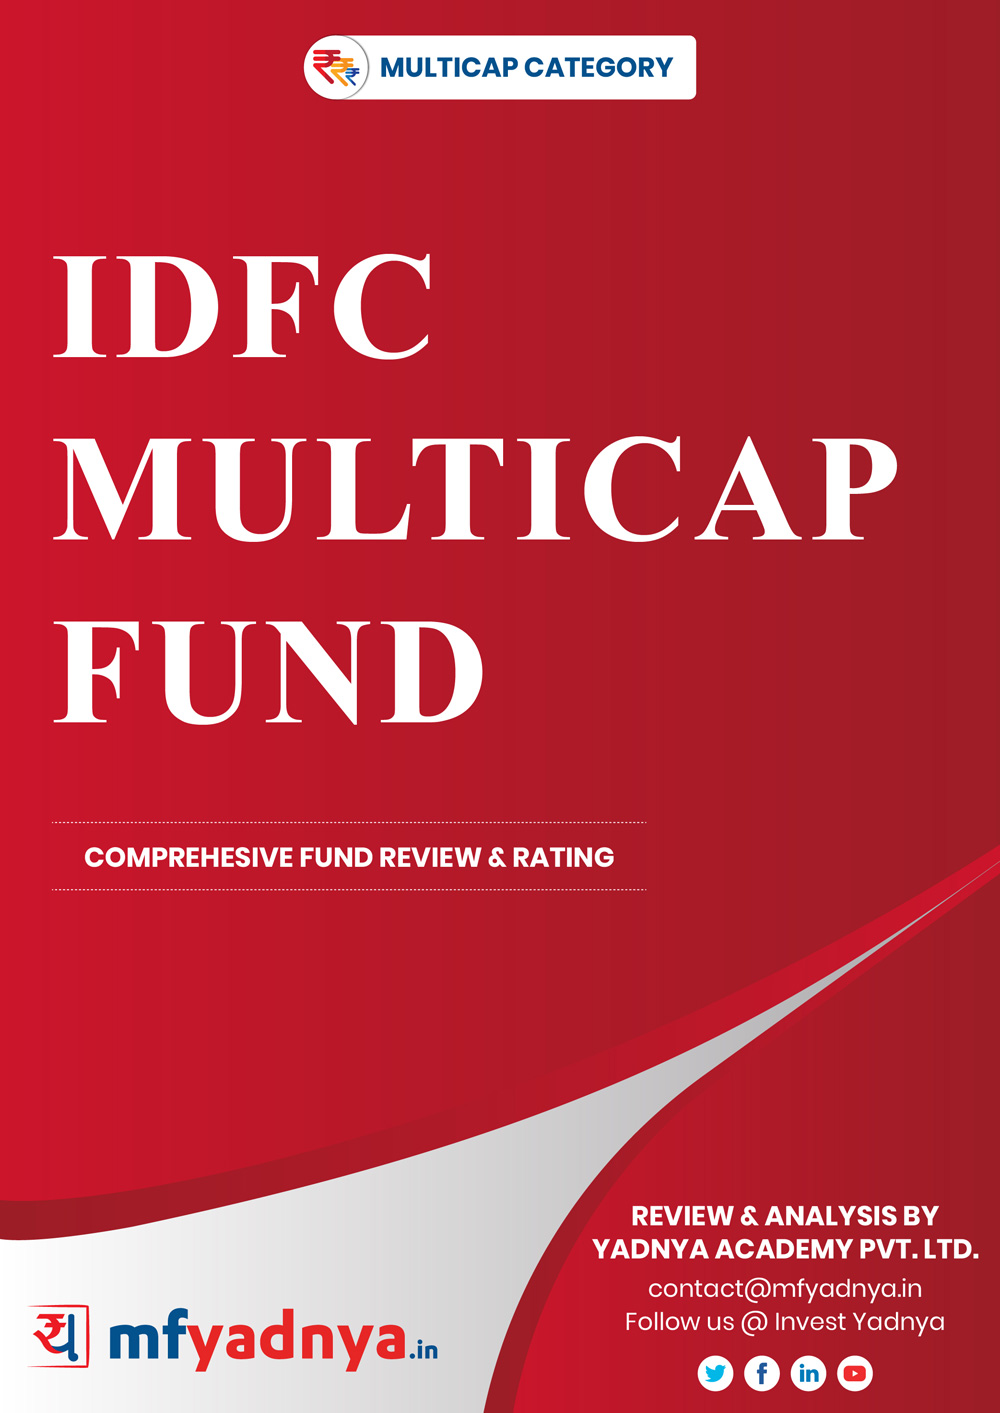 Multi-Cap Category Review - IDFC Multicap Fund. Most Comprehensive and detailed MF review based on Yadnya's proprietary methodology of Green, Yellow & Red Star. Detailed Analysis & Review based on July 31st, 2019 data.